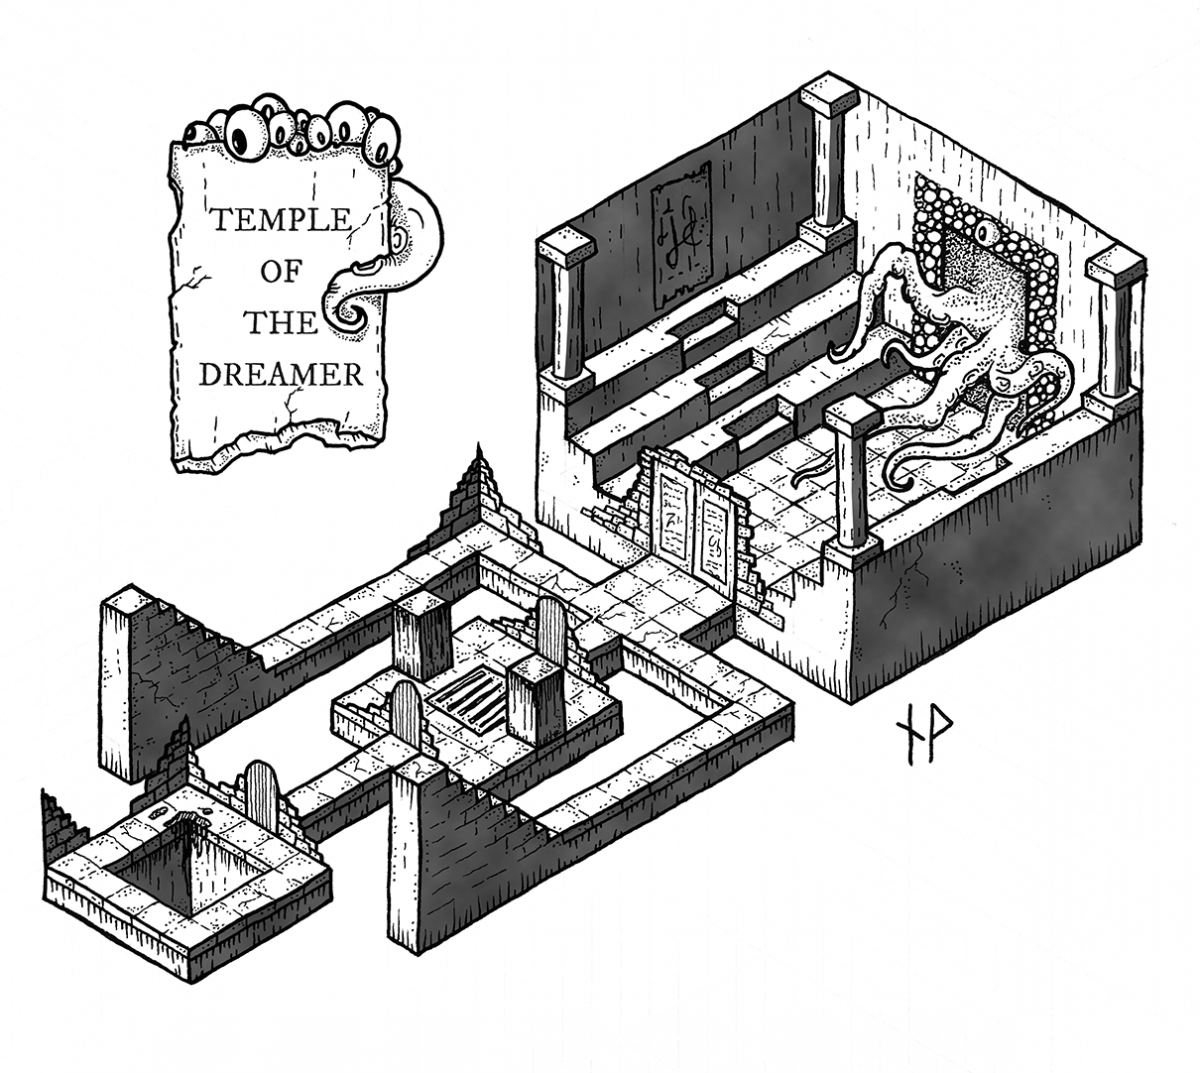 Isometric map: The Temple of the Dreamer